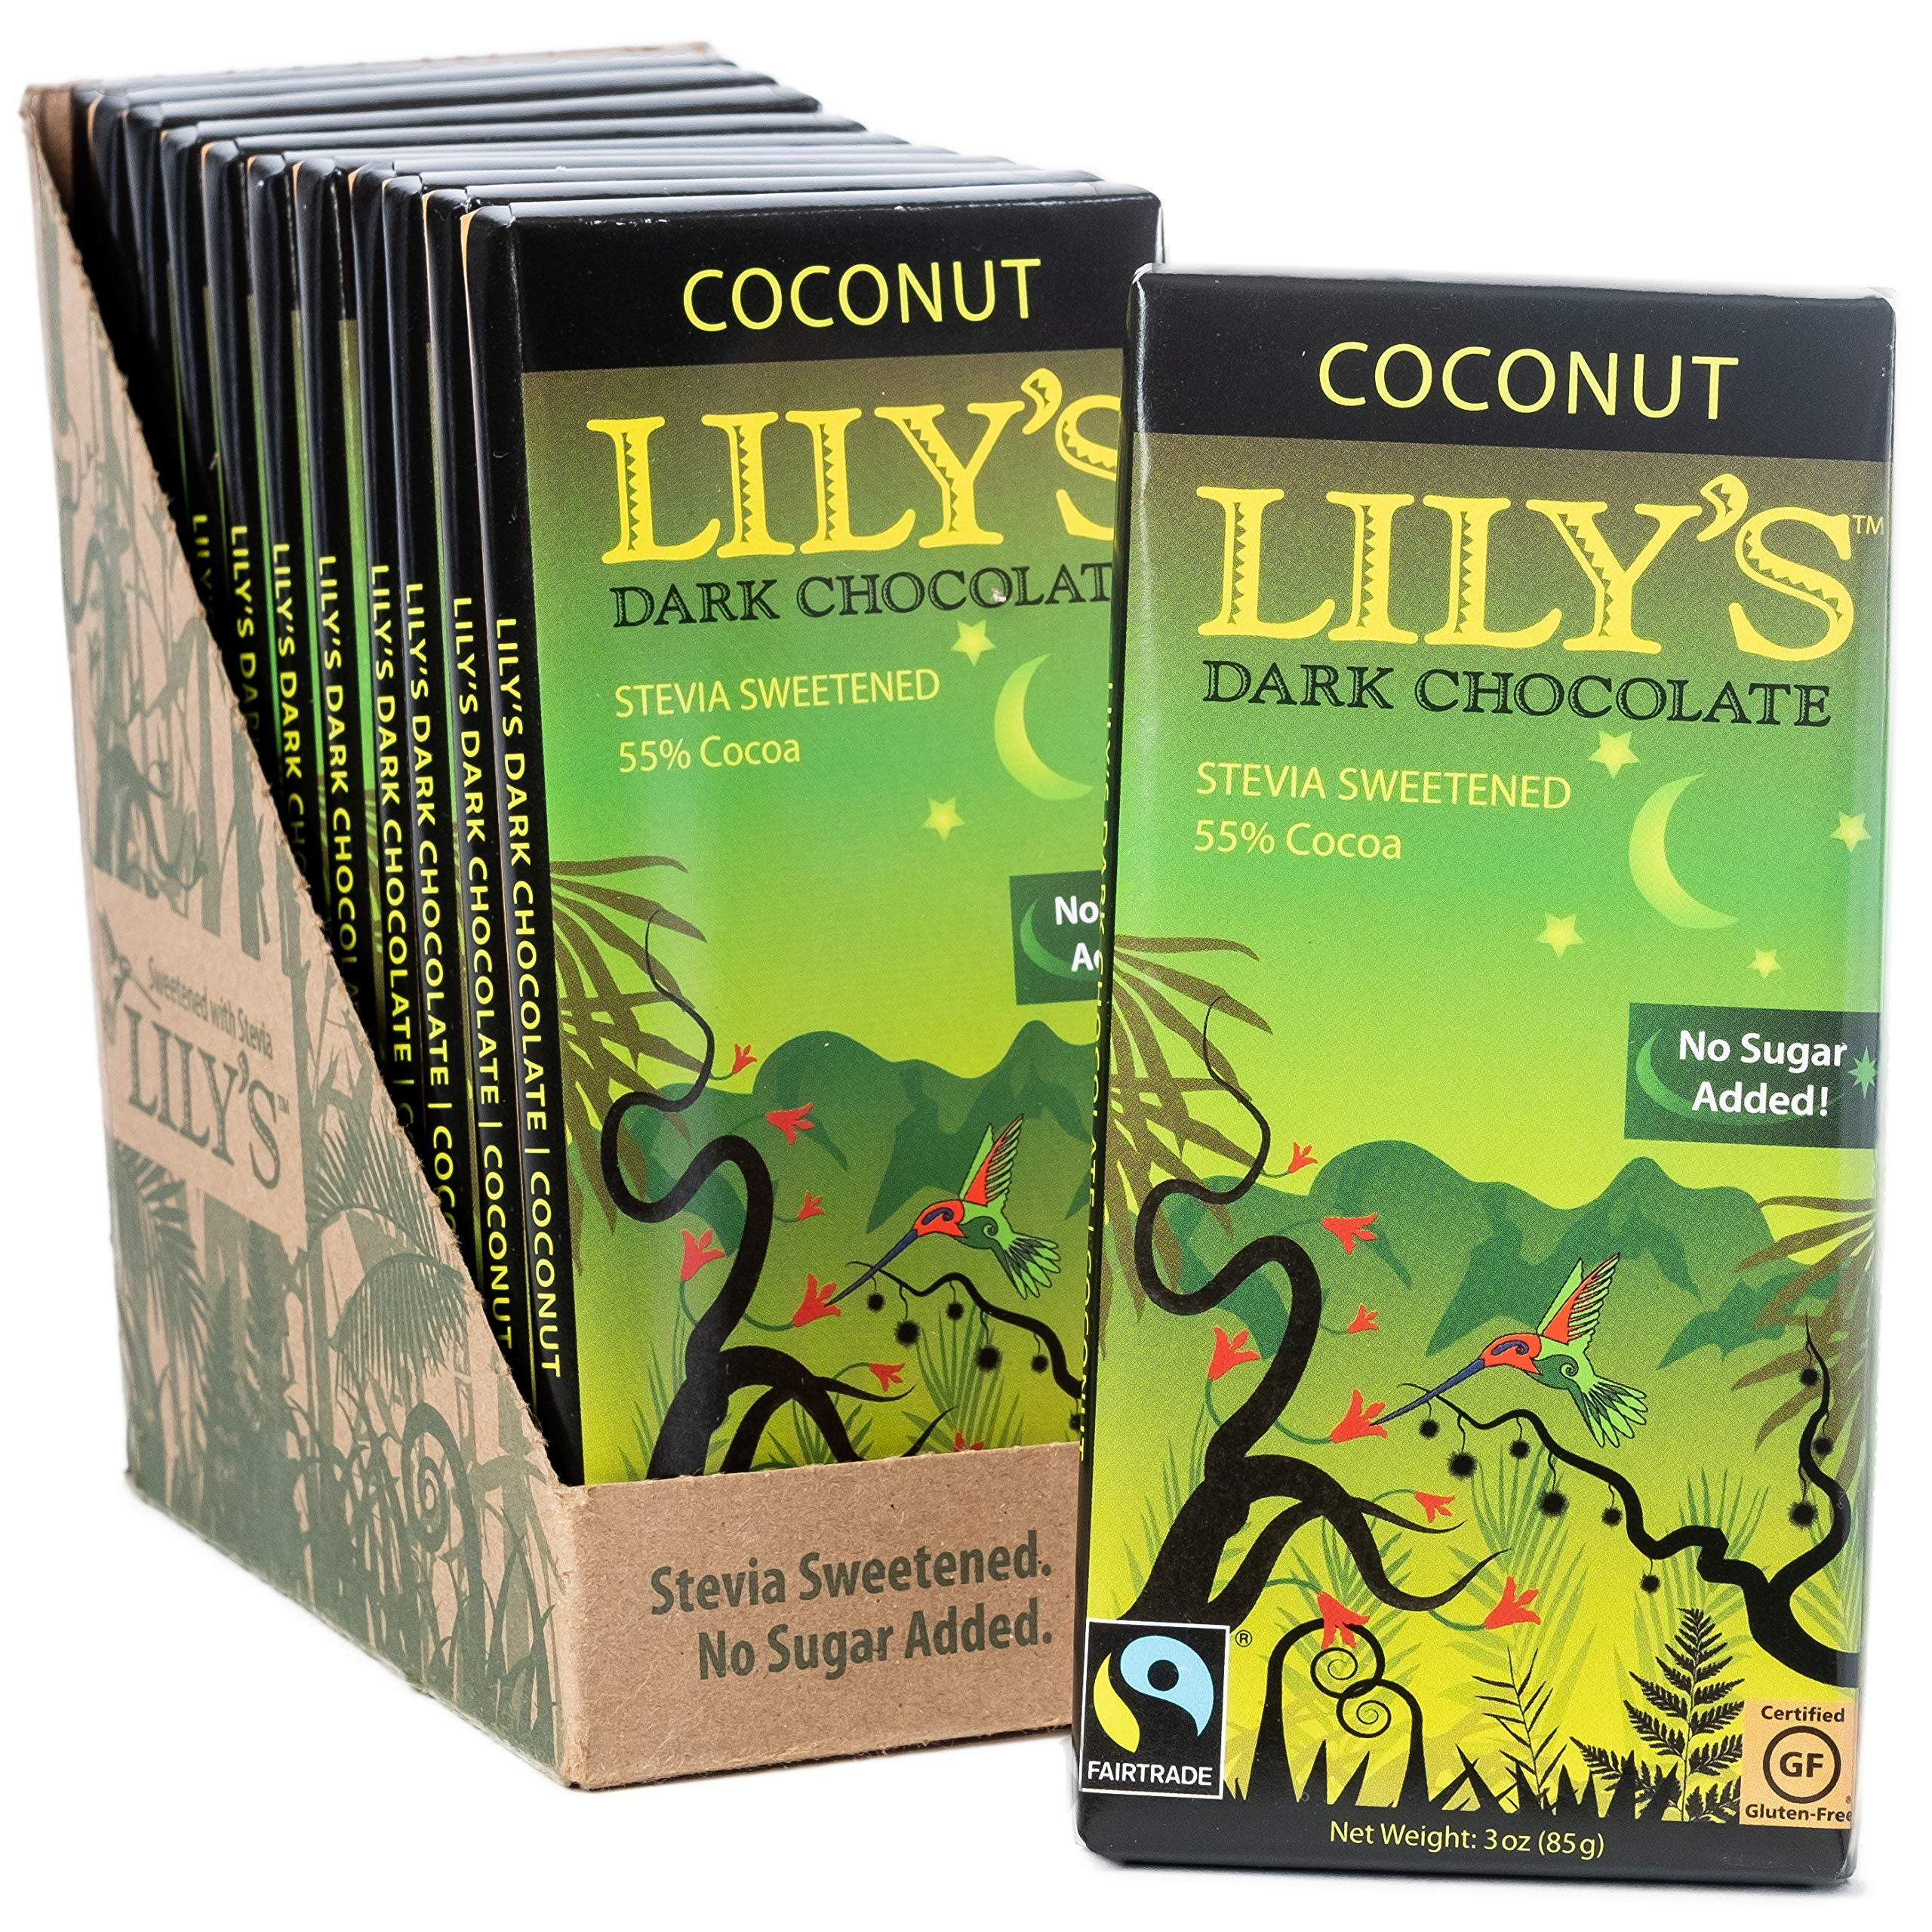 Coconut Dark Chocolate Bar by Lily's Sweets | Stevia Sweetened, No Added Sugar, Low-Carb, Keto Friendly | 55% Cacao | Fair Trade, Gluten-Free & Non-GMO | 3 ounce, 12-Pack